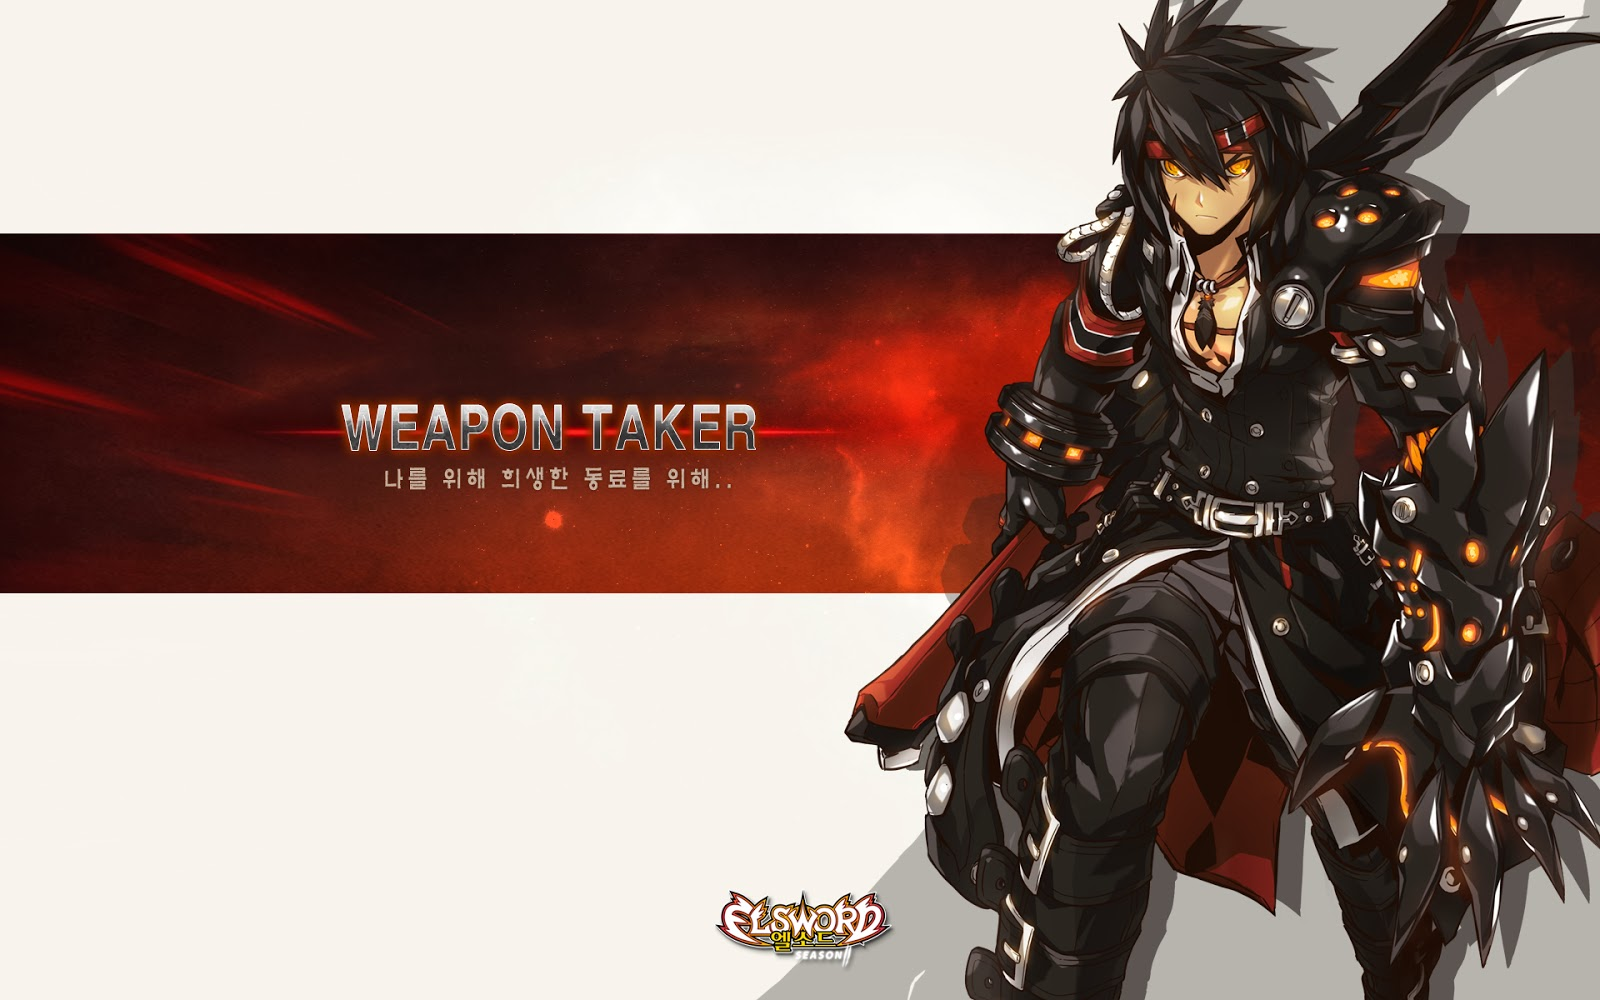 Raven Weapon Taker